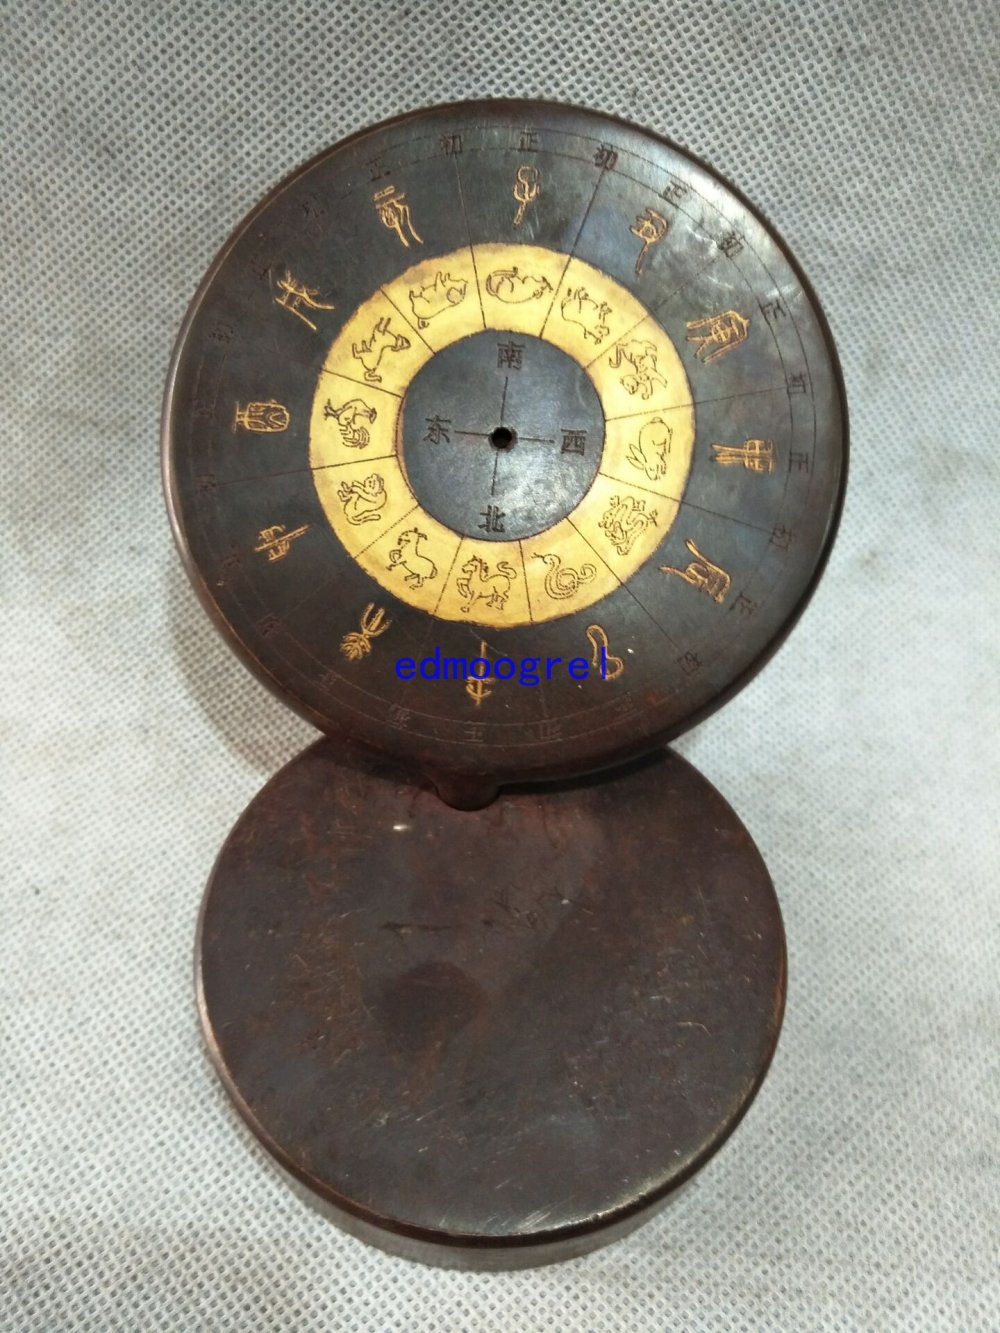 Rare Old Chinese Feng shui brass compass statue / Sculpture,with mark,Weight 1.3 kg,Home decorations ornaments